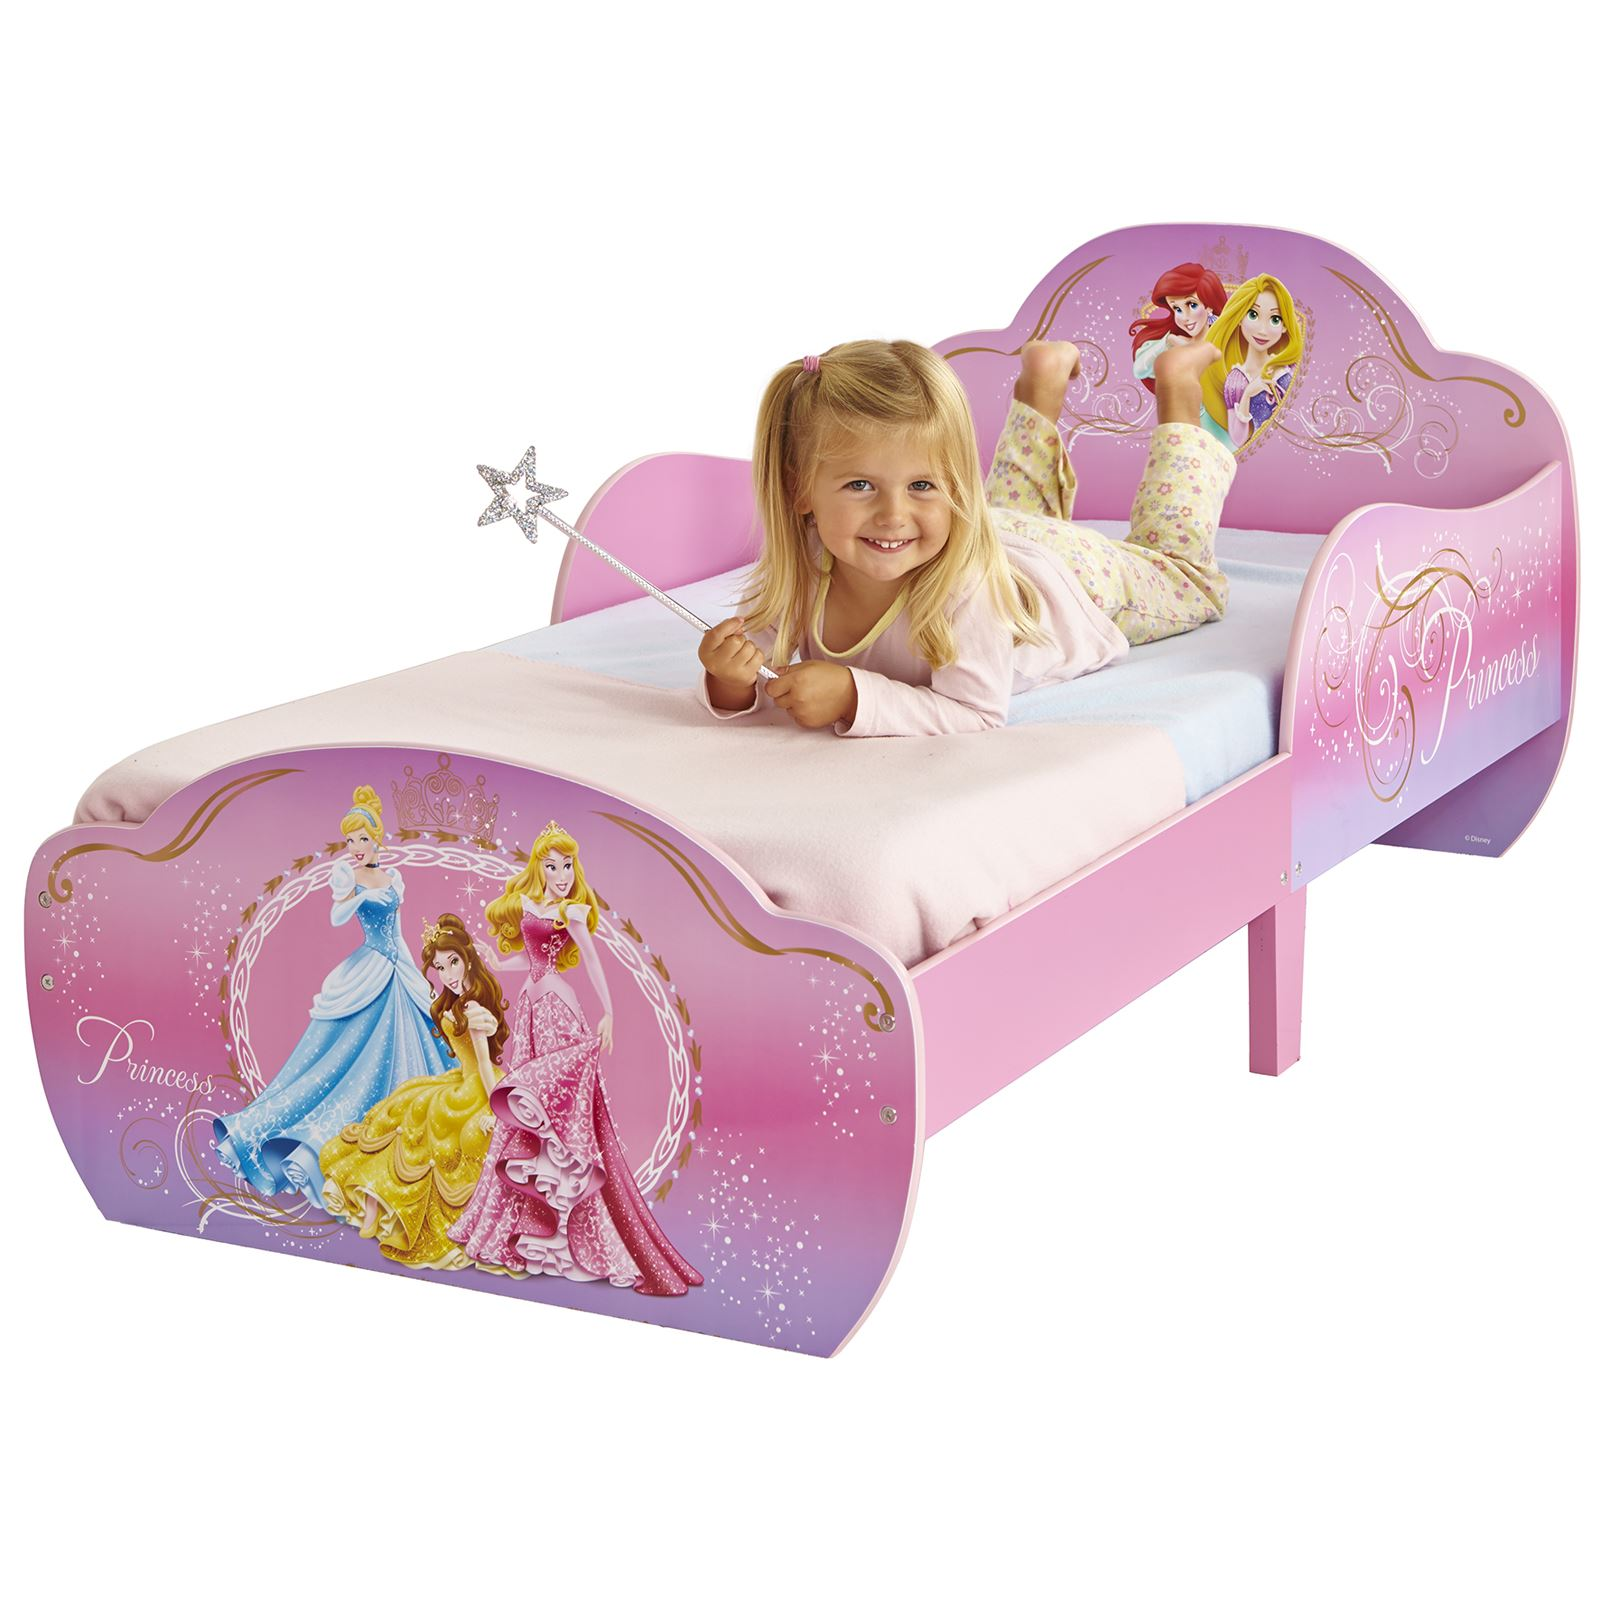 DISNEY PRINCESS SNUGGLETIME MDF TODDLER BED NEW GIRLS